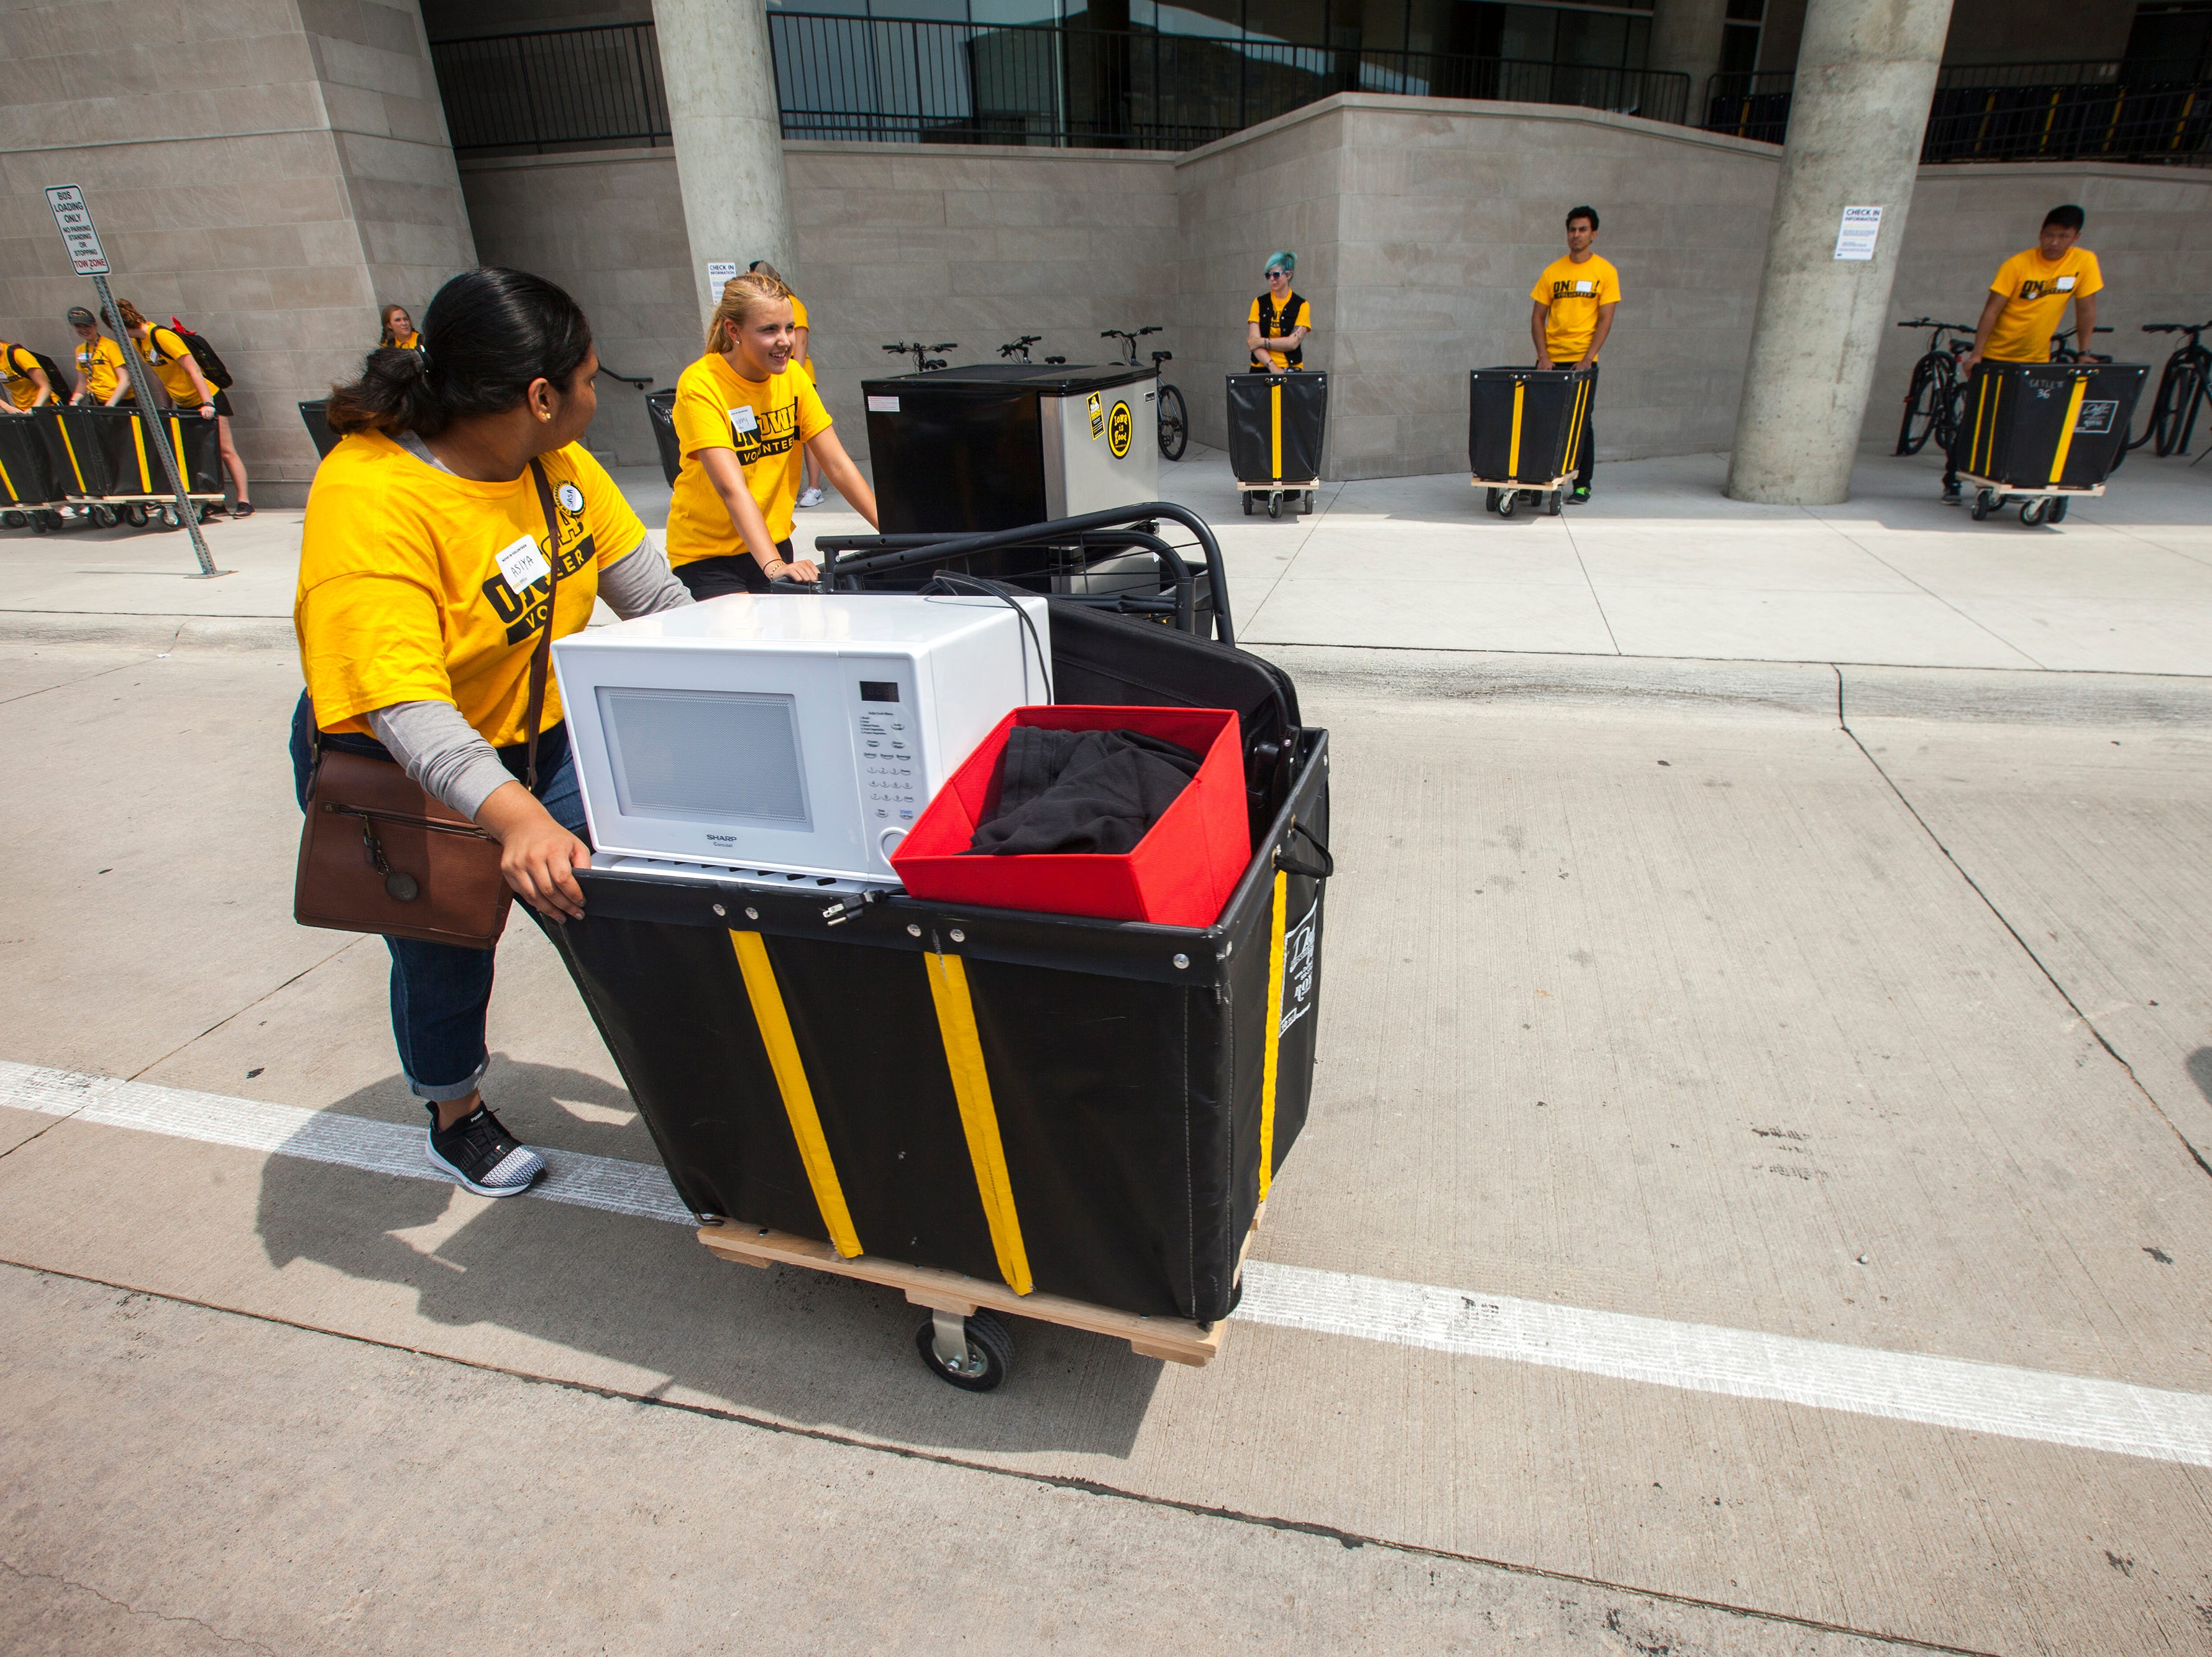 OnIowa volunteers help with move-in at Catlett Residence Hall during new student move-in on Tuesday, Aug. 14, 2018, on the University of Iowa campus in Iowa City. Tuesday was the first day for new students on campus to move into their residence halls.